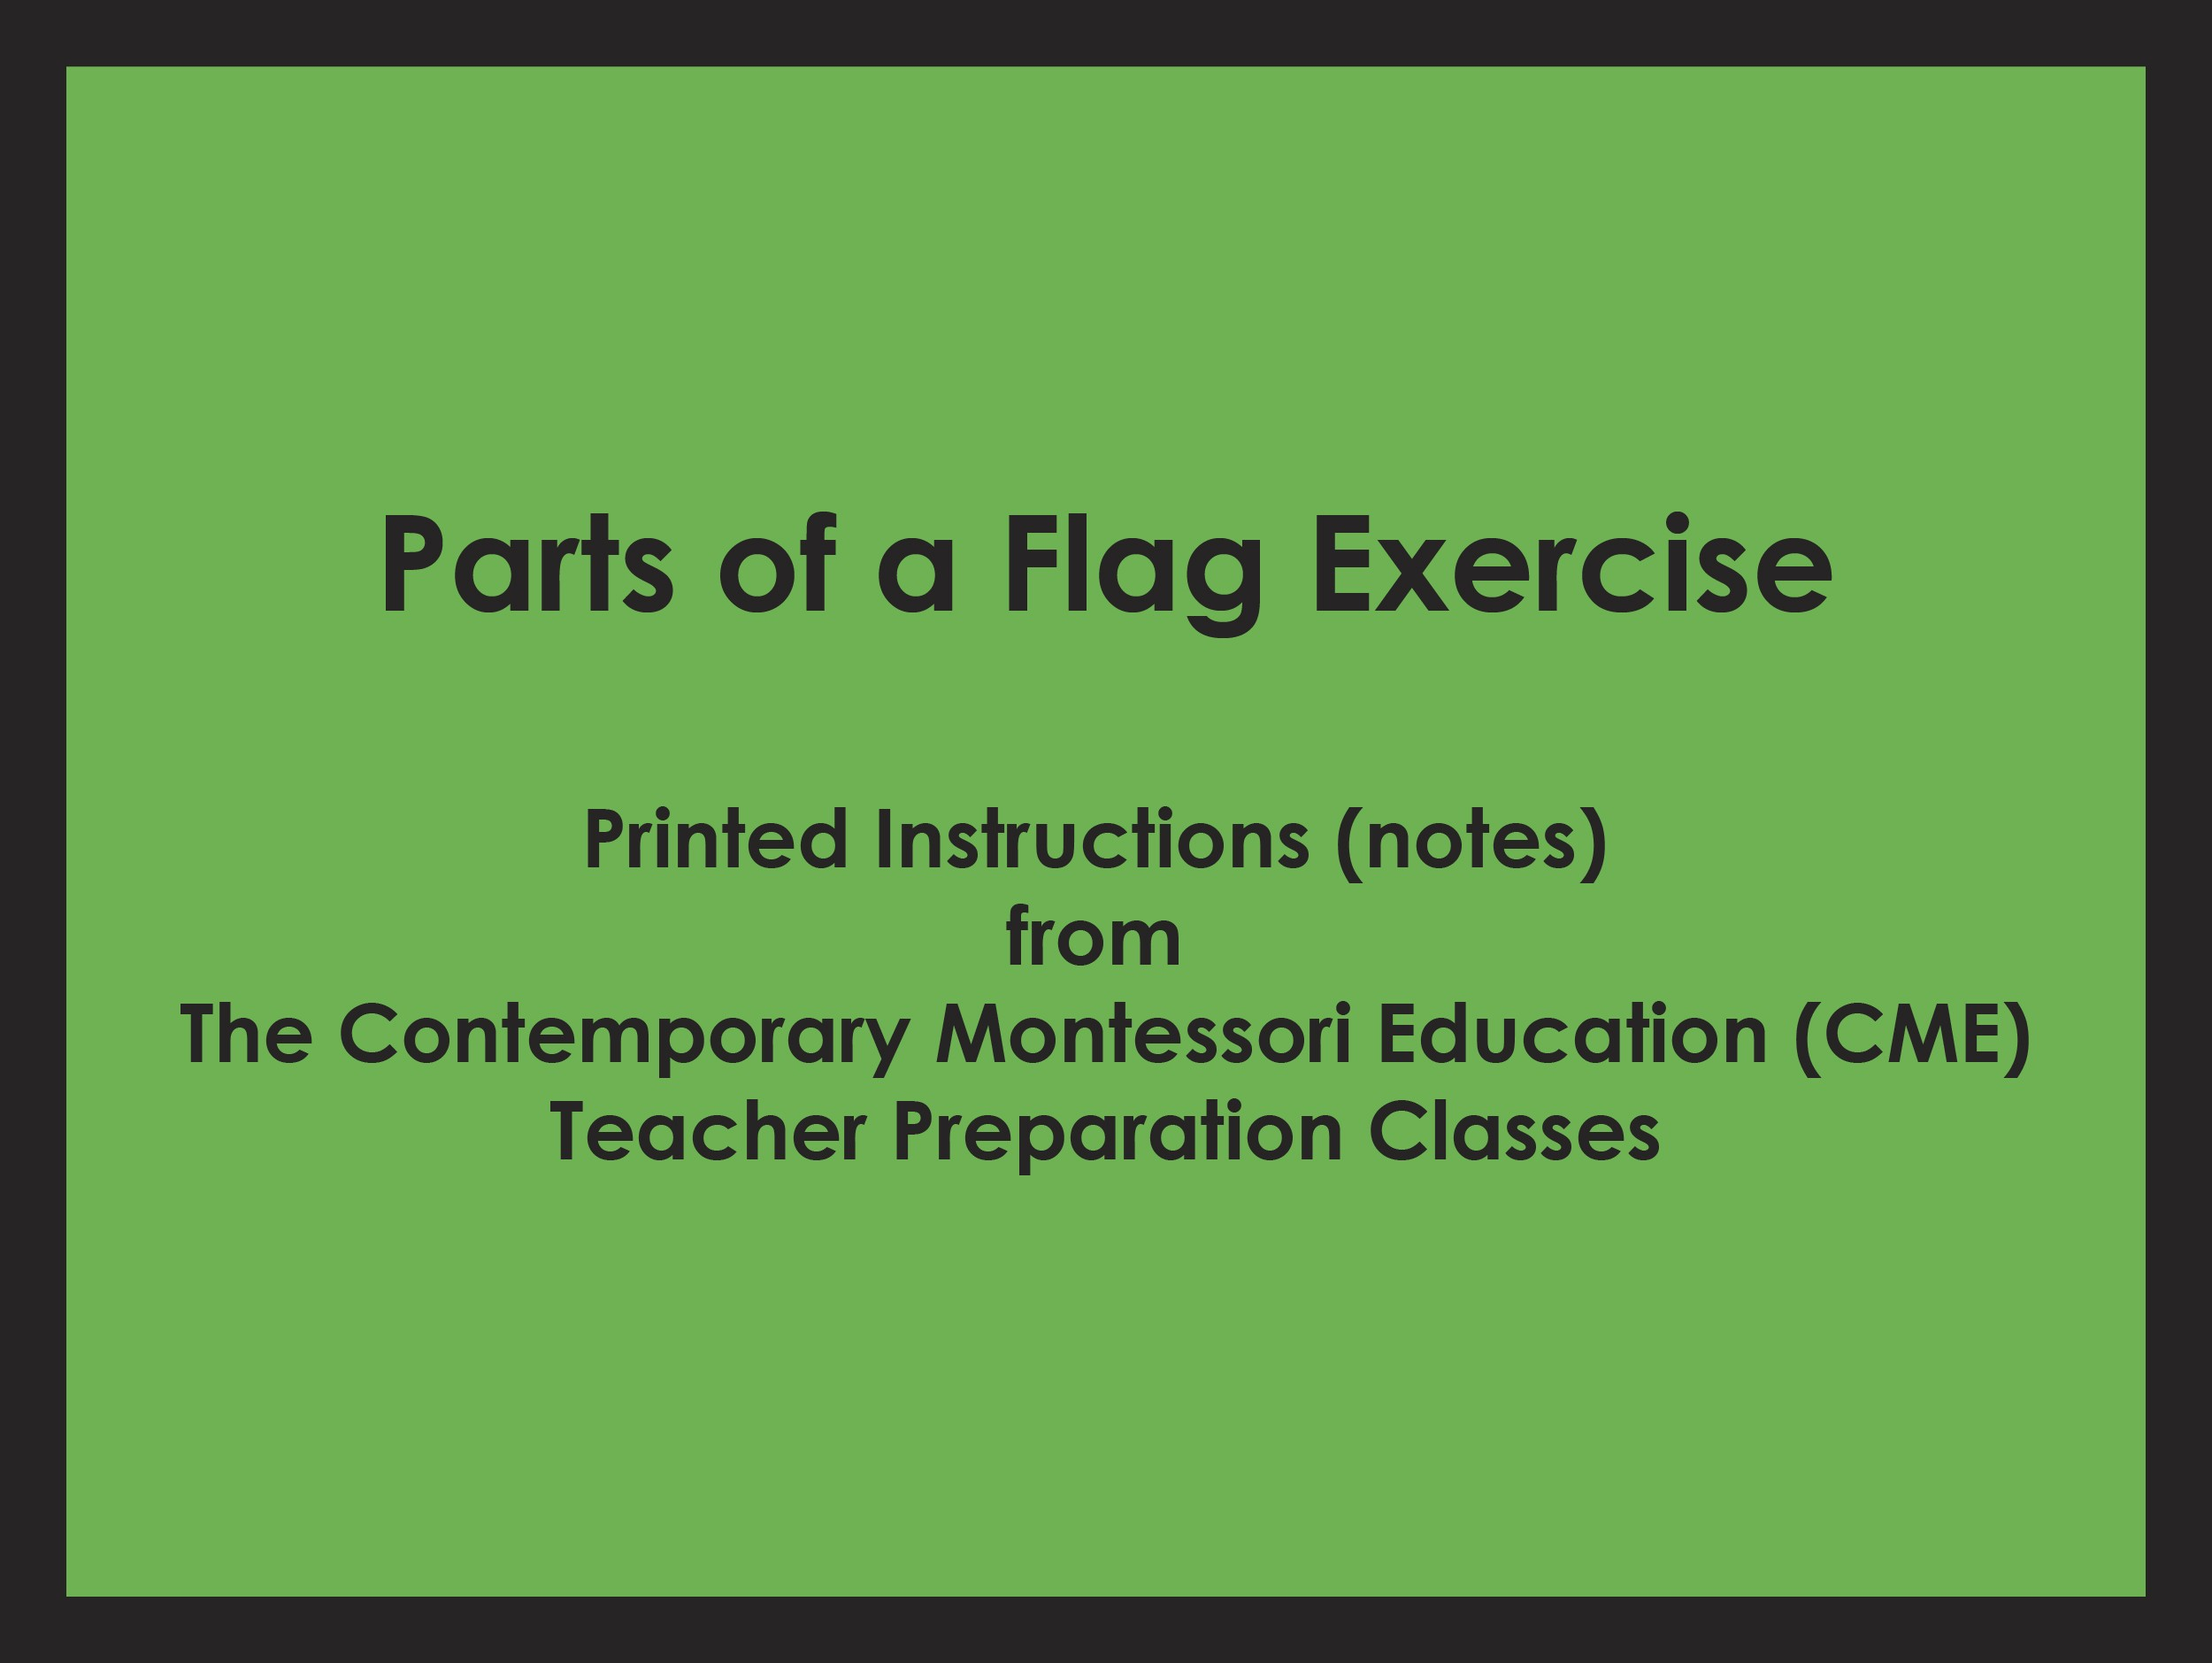 Parts of a Flag Exercise (CME notes) ● SENS-CME-GE-40